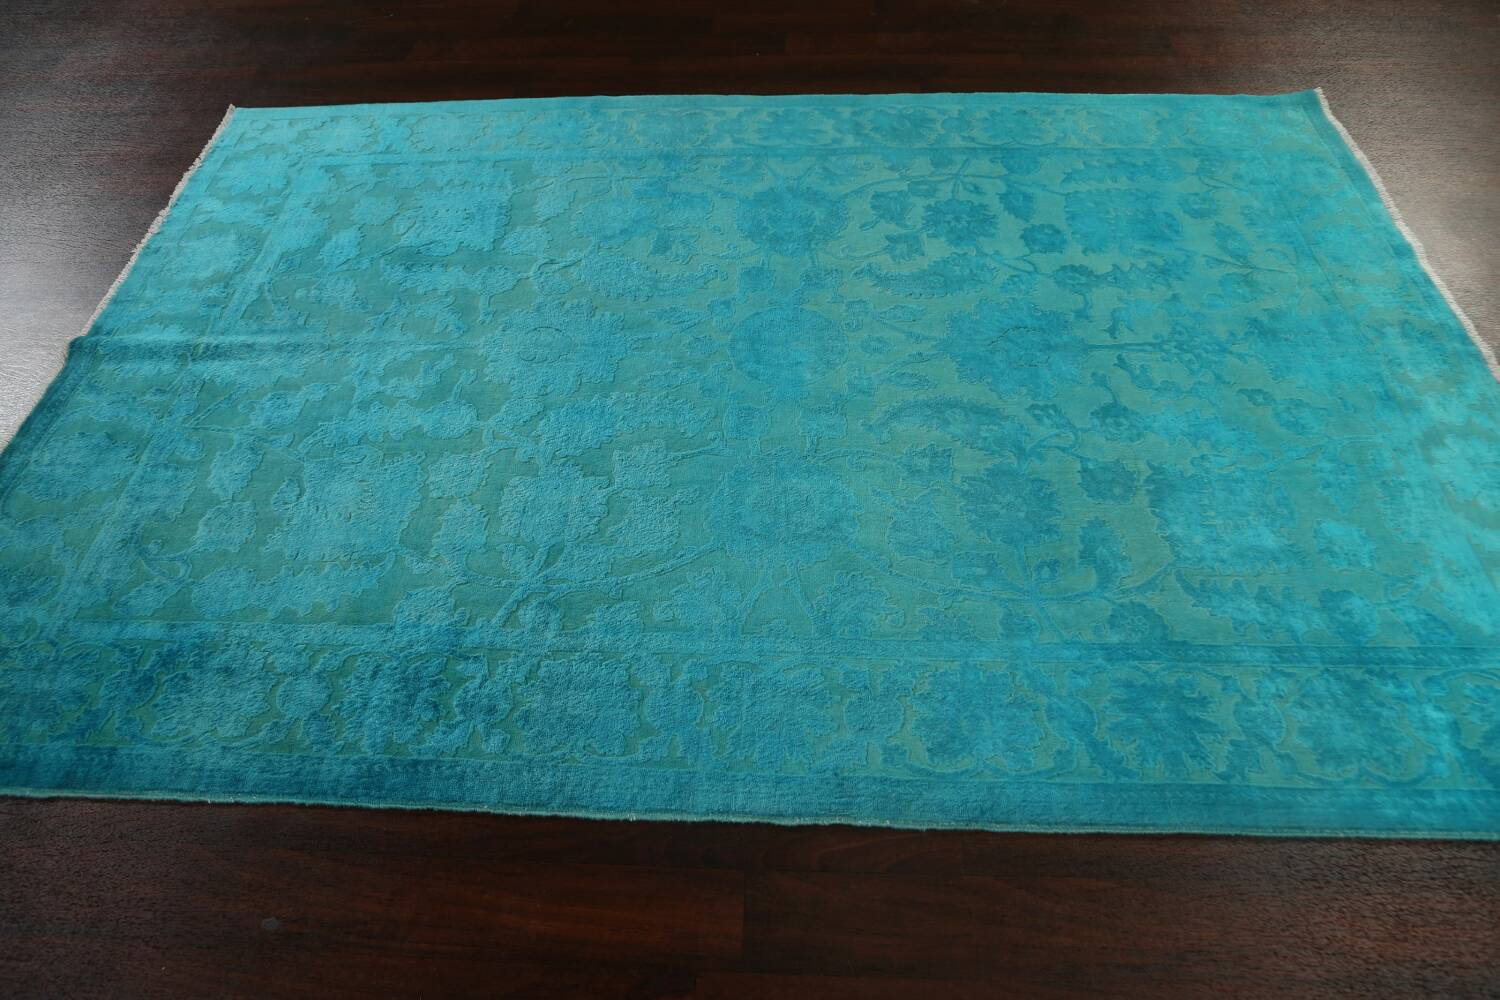 Vegetable Dye Carved Aqua Oushak Chobi Oriental Area Rug 6x9 image 12